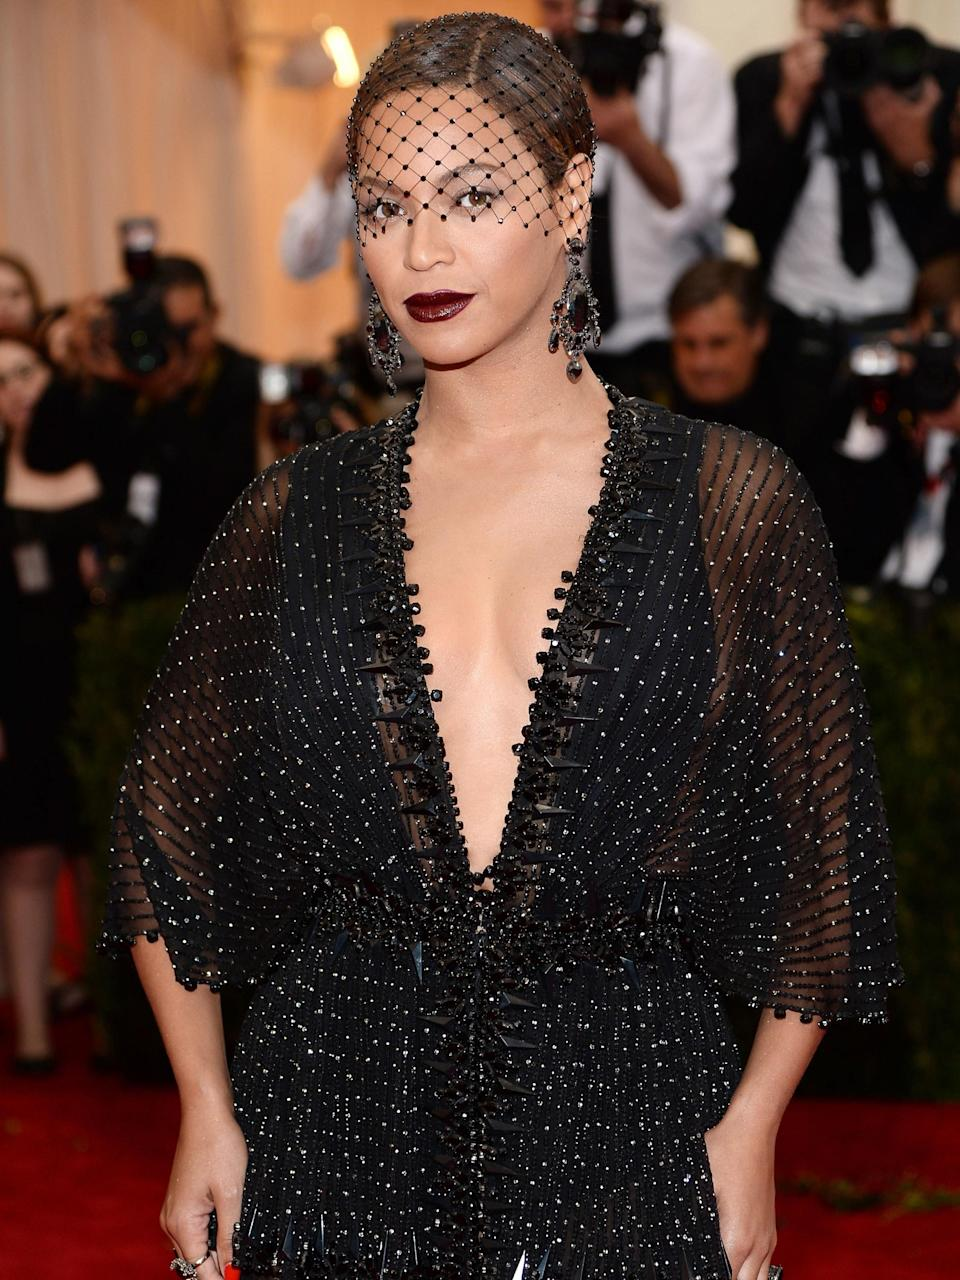 From Beyoncé's deep rouge-noir lip to Kate Moss' finger-raked waves, the Met Gala has long been the site of iconic beauty transformations.